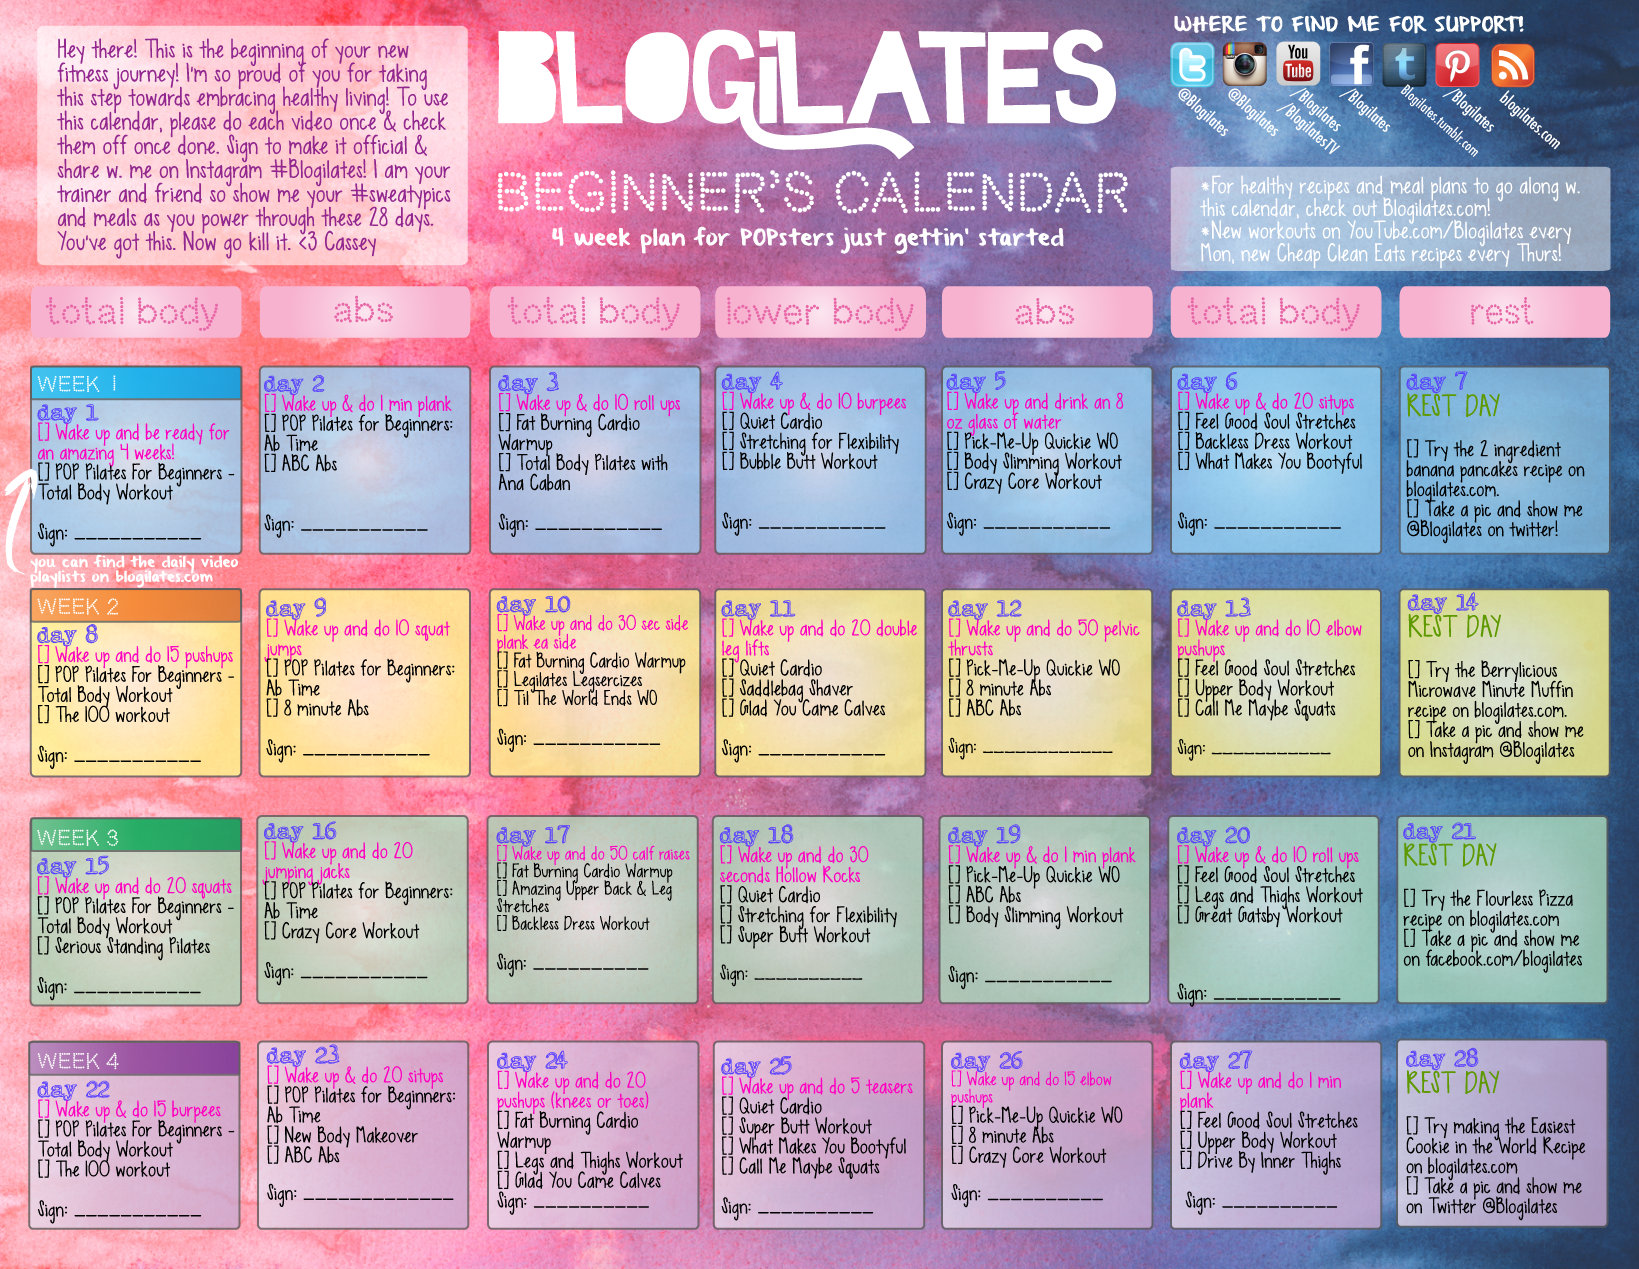 POP Pilates for Beginners Calendar! |